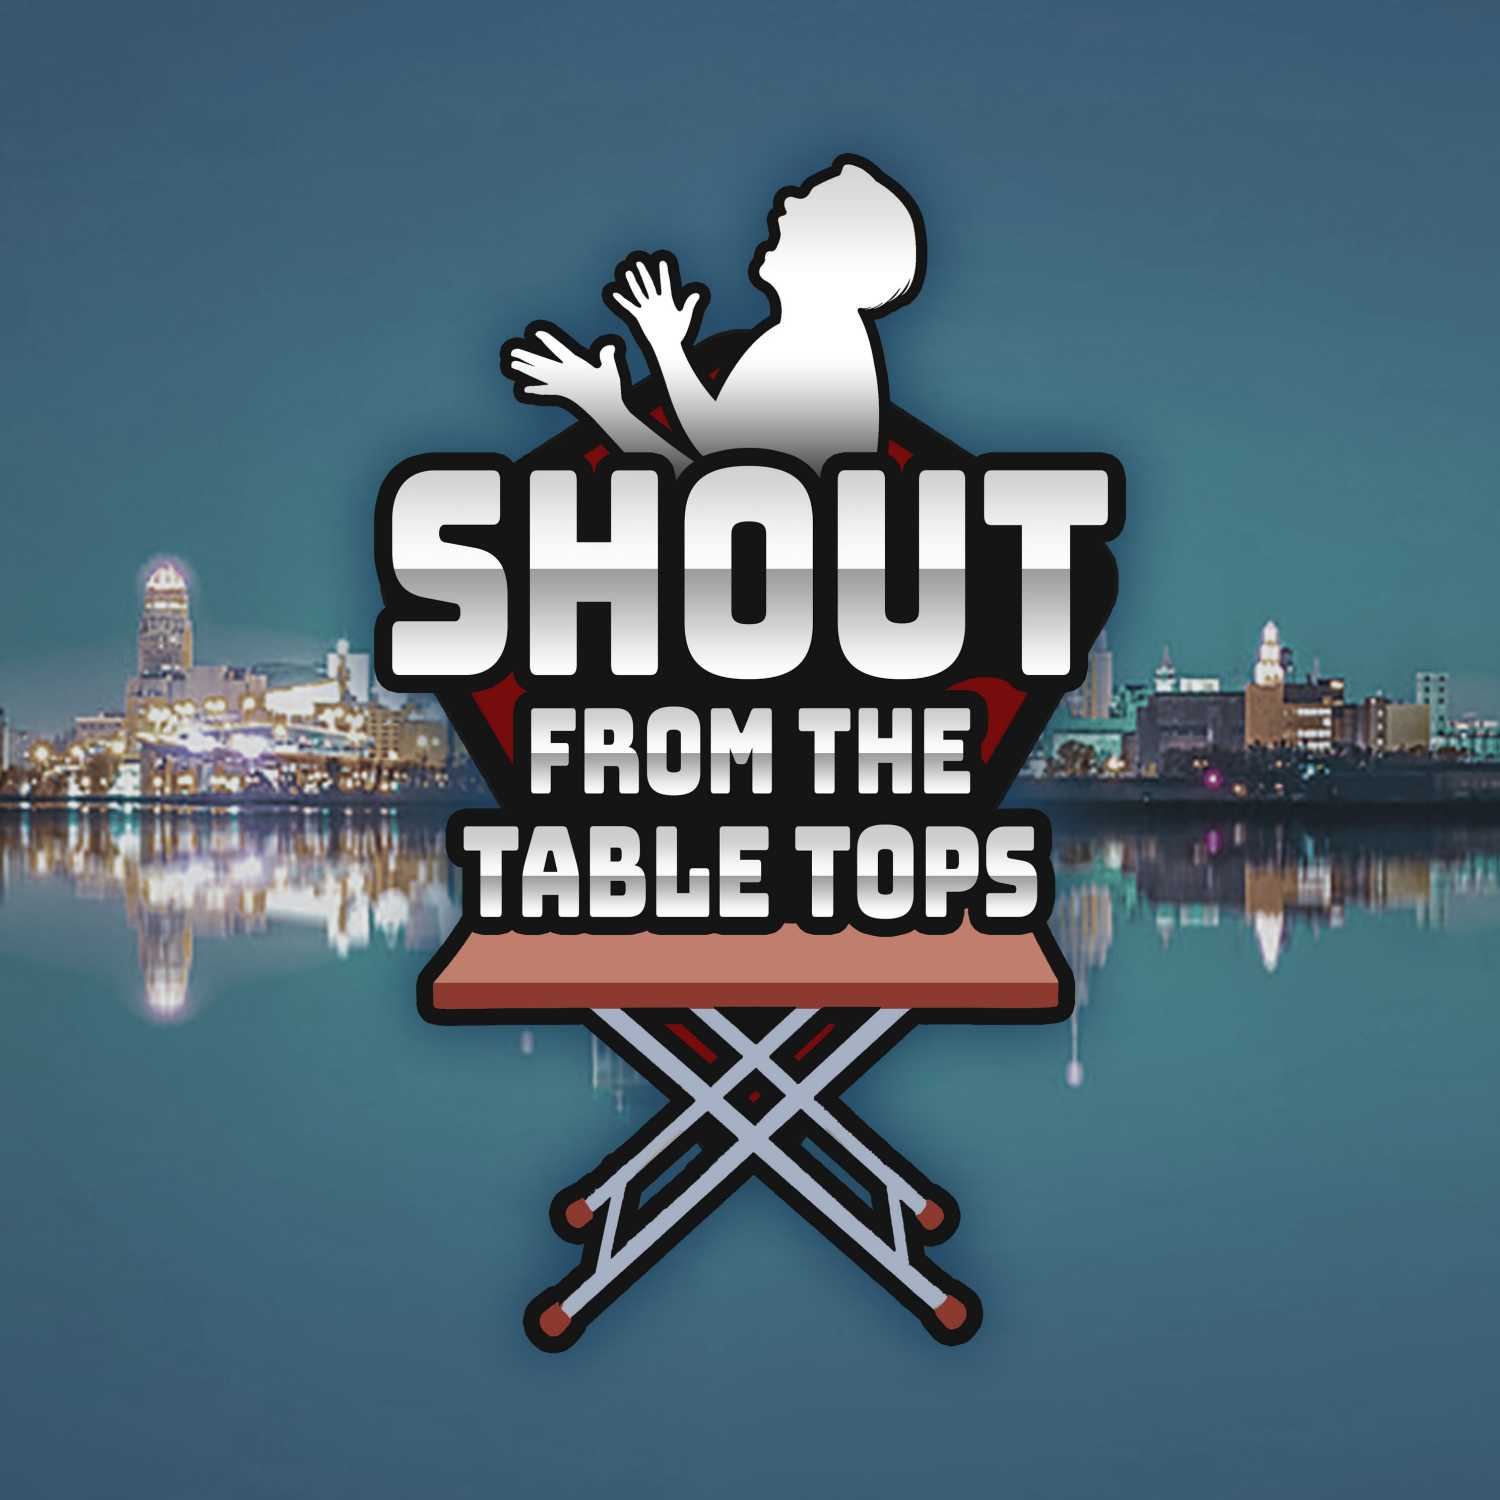 Shout from the Tabletops